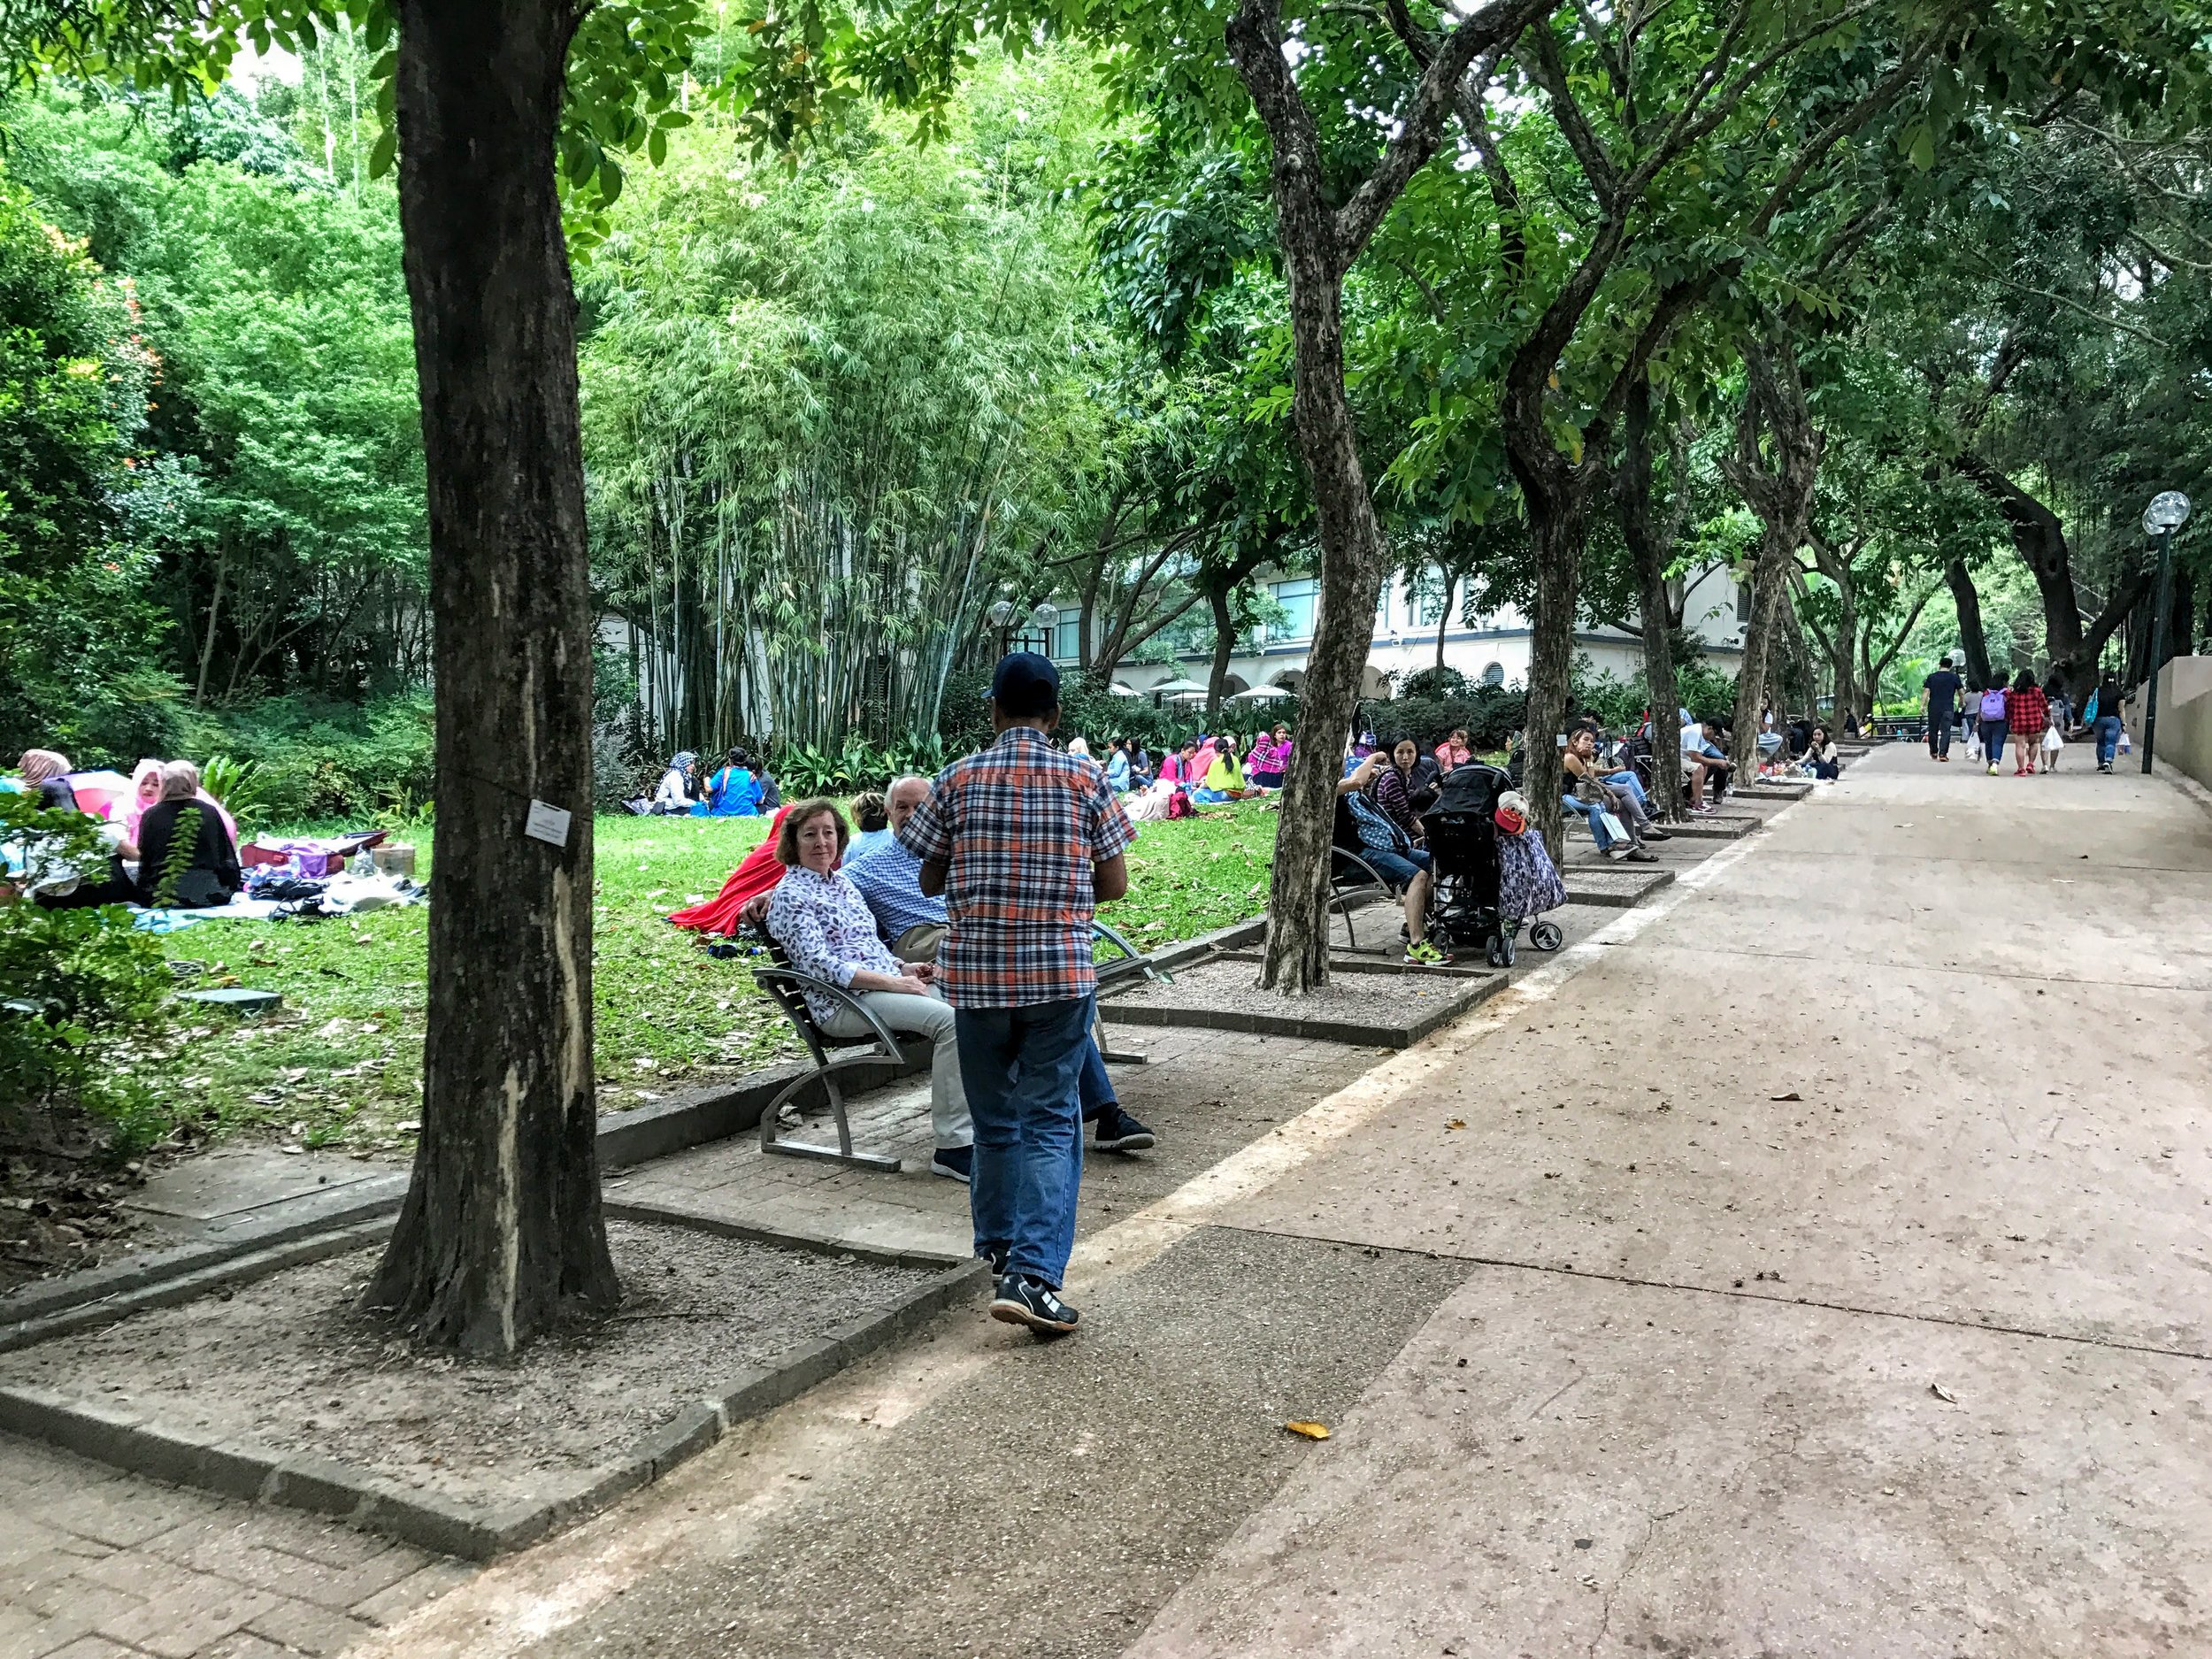 Everyone getting together on Sunday to hangout and catch up at Kowloon Park // Hong Kong